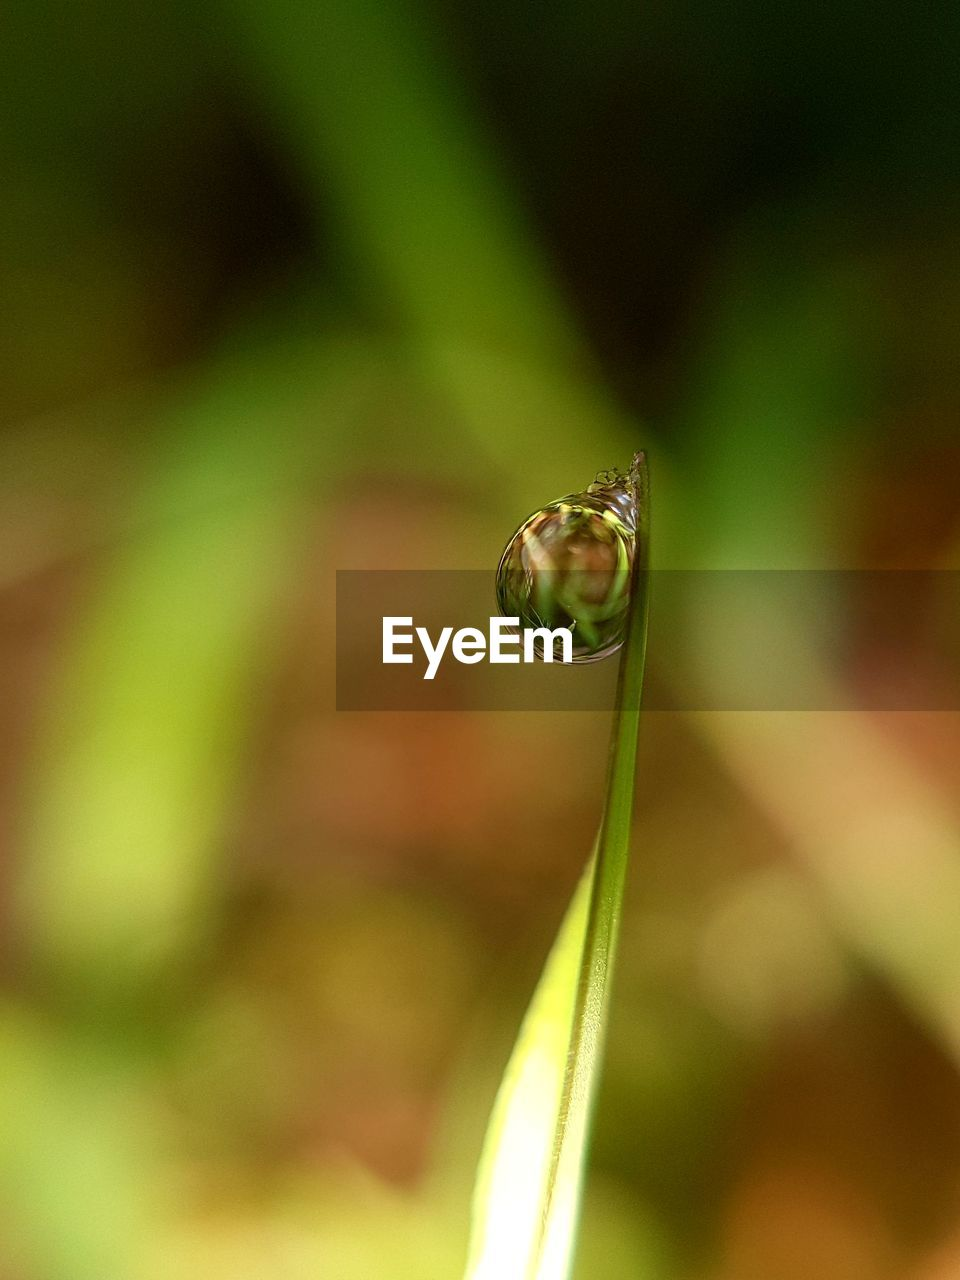 close-up, green color, plant, animal themes, animal, one animal, selective focus, beauty in nature, animals in the wild, growth, animal wildlife, focus on foreground, no people, nature, day, invertebrate, insect, fragility, outdoors, vulnerability, blade of grass, purity